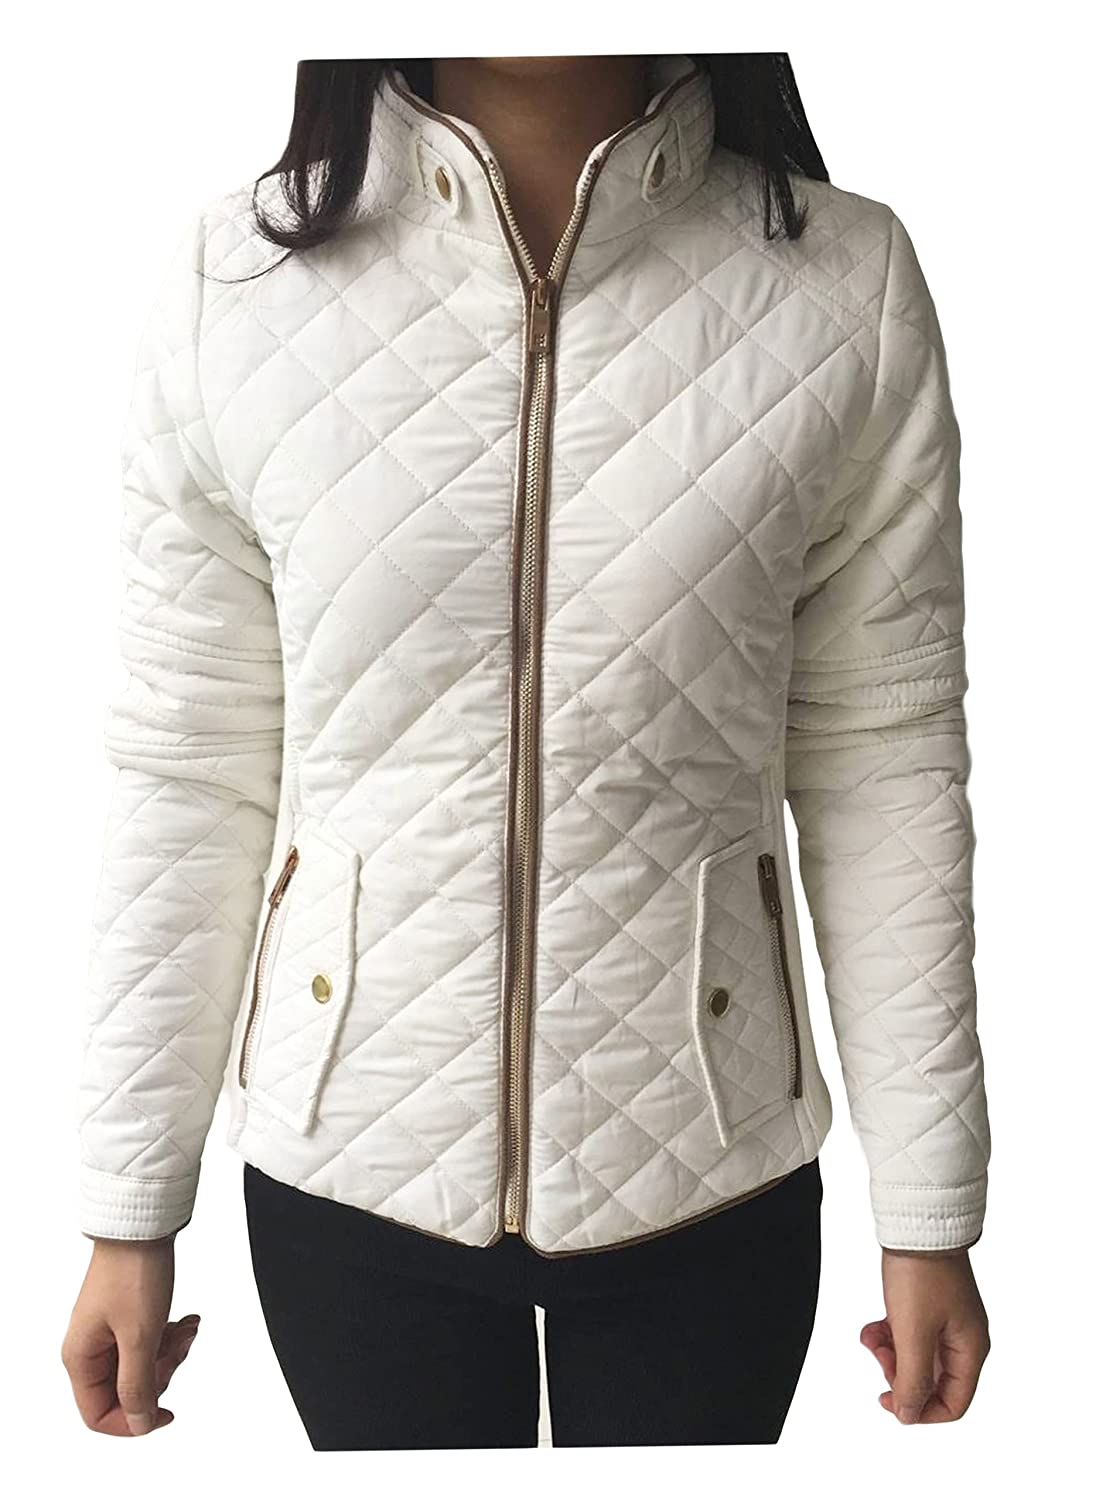 Alipolo Women's Winter Plus Size Full Zip Thick Padded Jacket